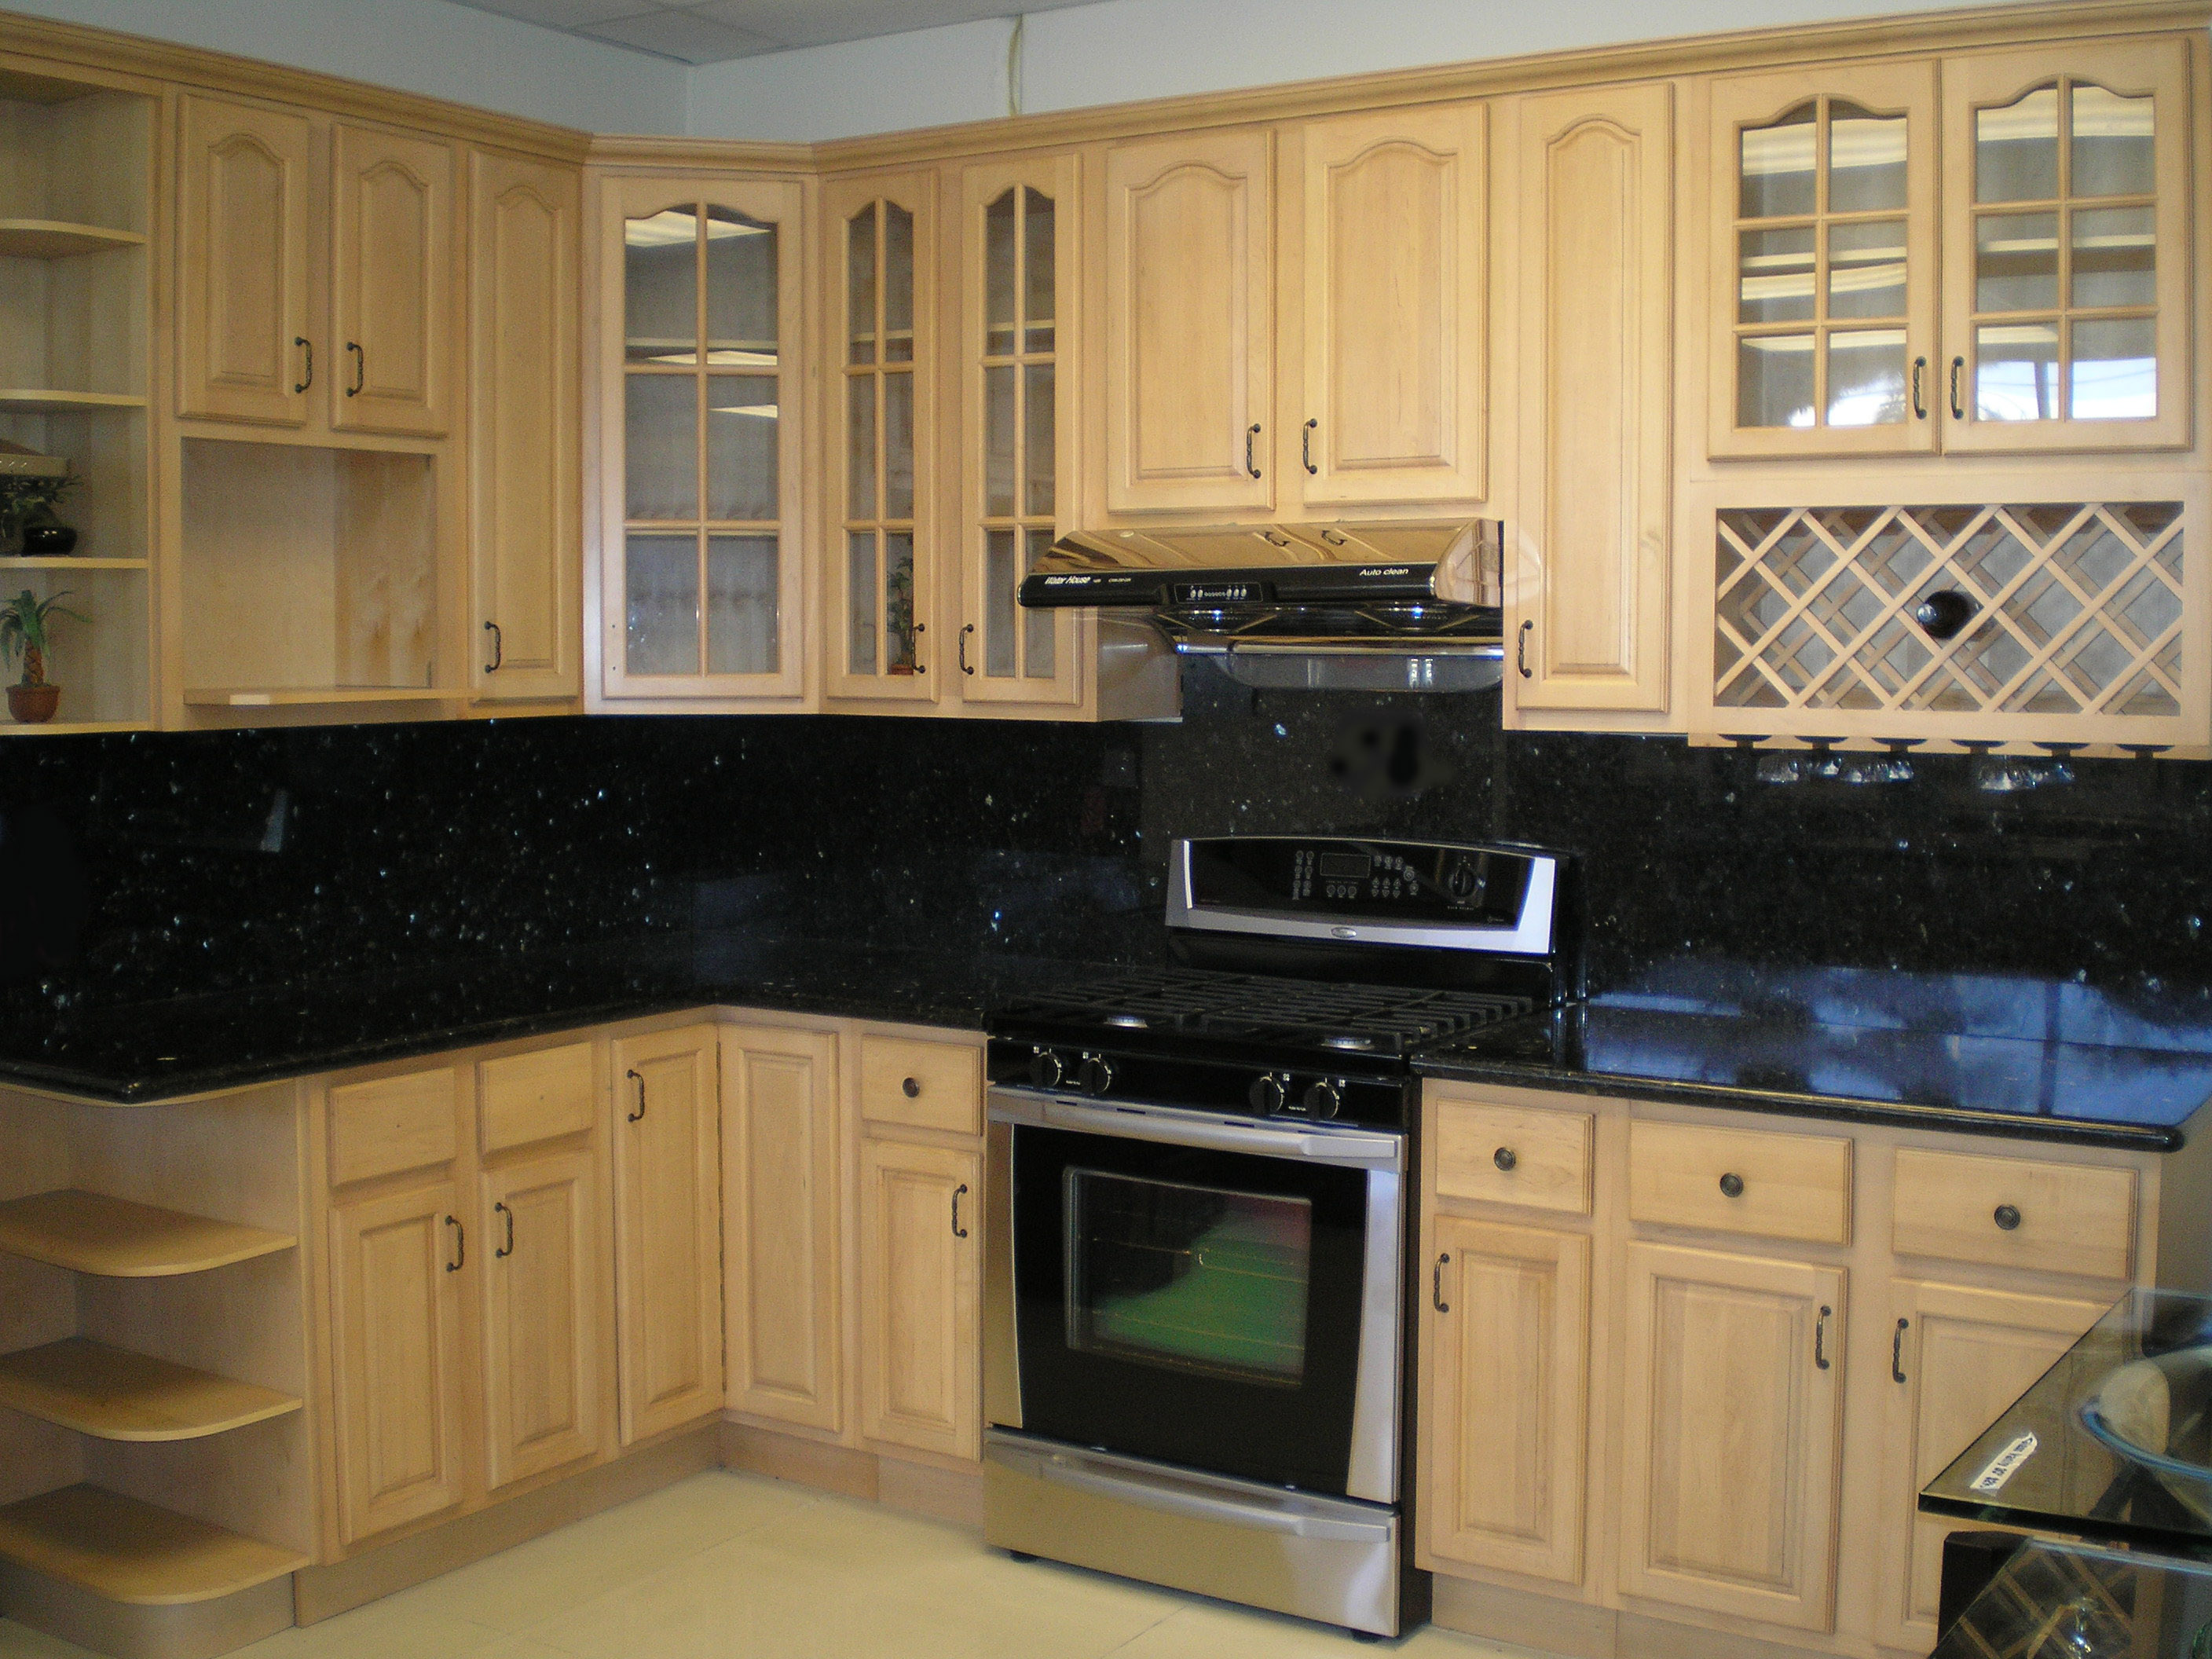 Remarkable White Countertops with Maple Cabinets Kitchen 2816 x 2112 · 1249 kB · jpeg